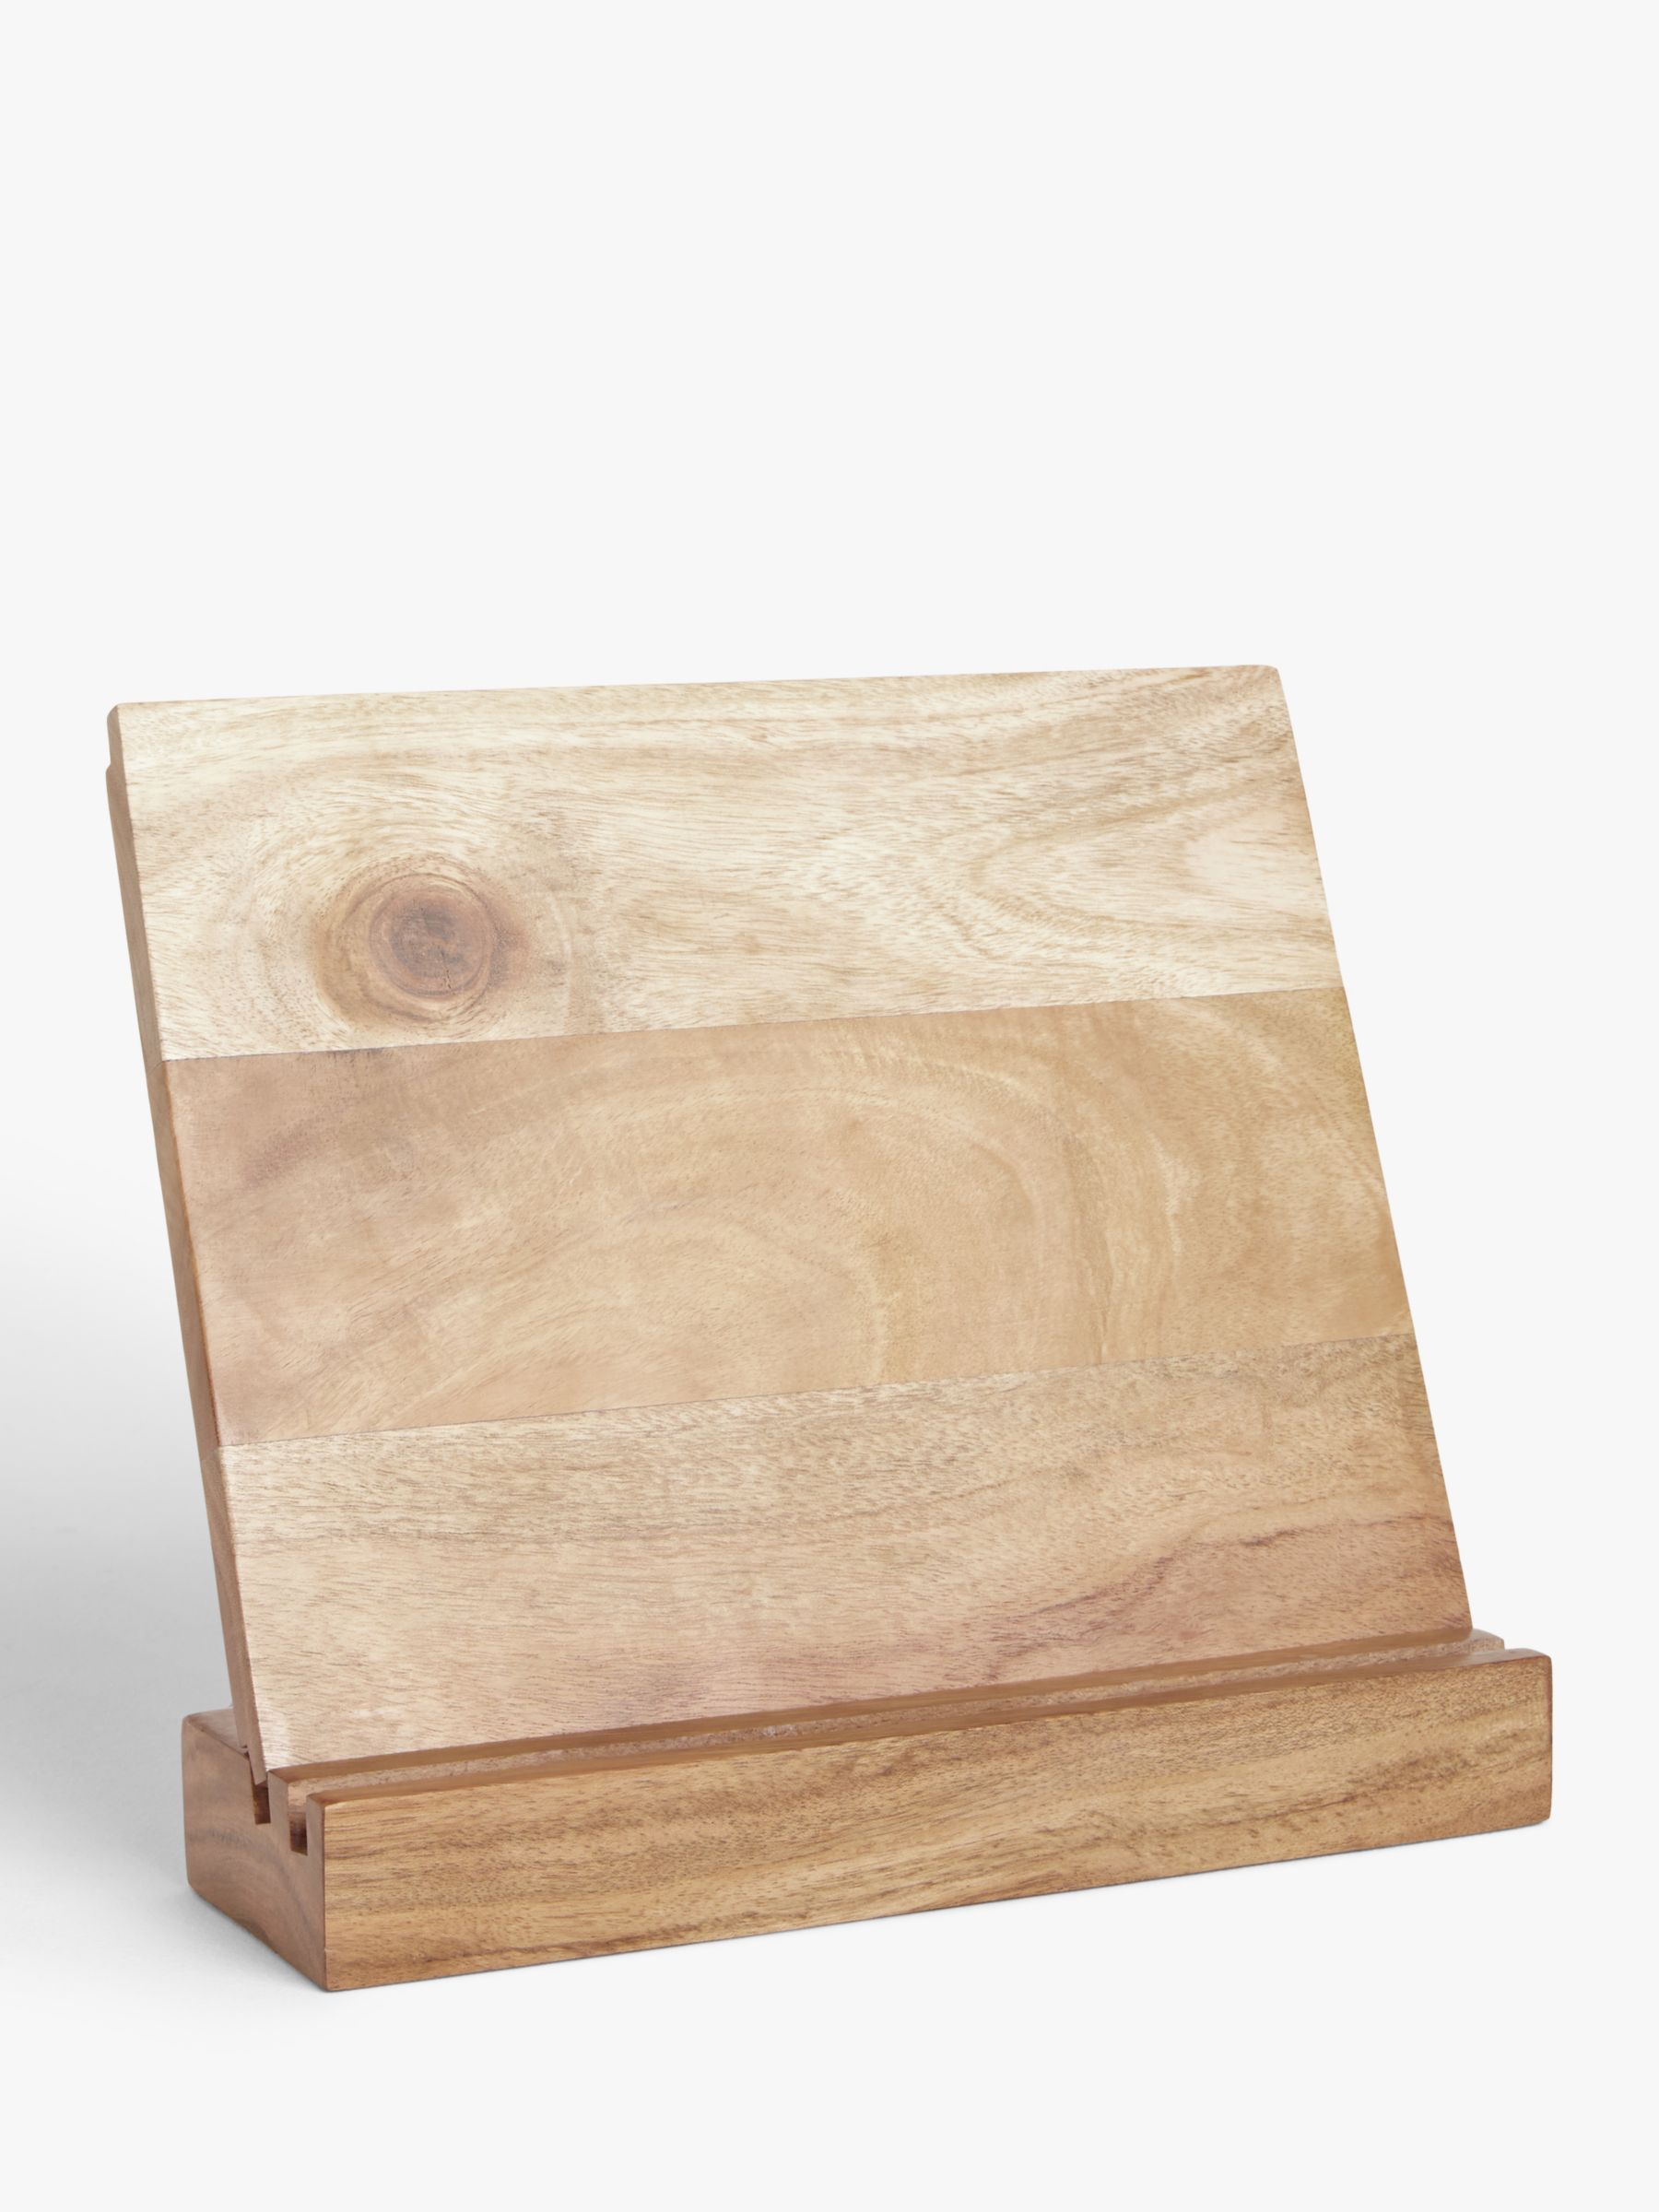 John Lewis & Partners Acacia Wood Cookbook/Tablet Stand and Board